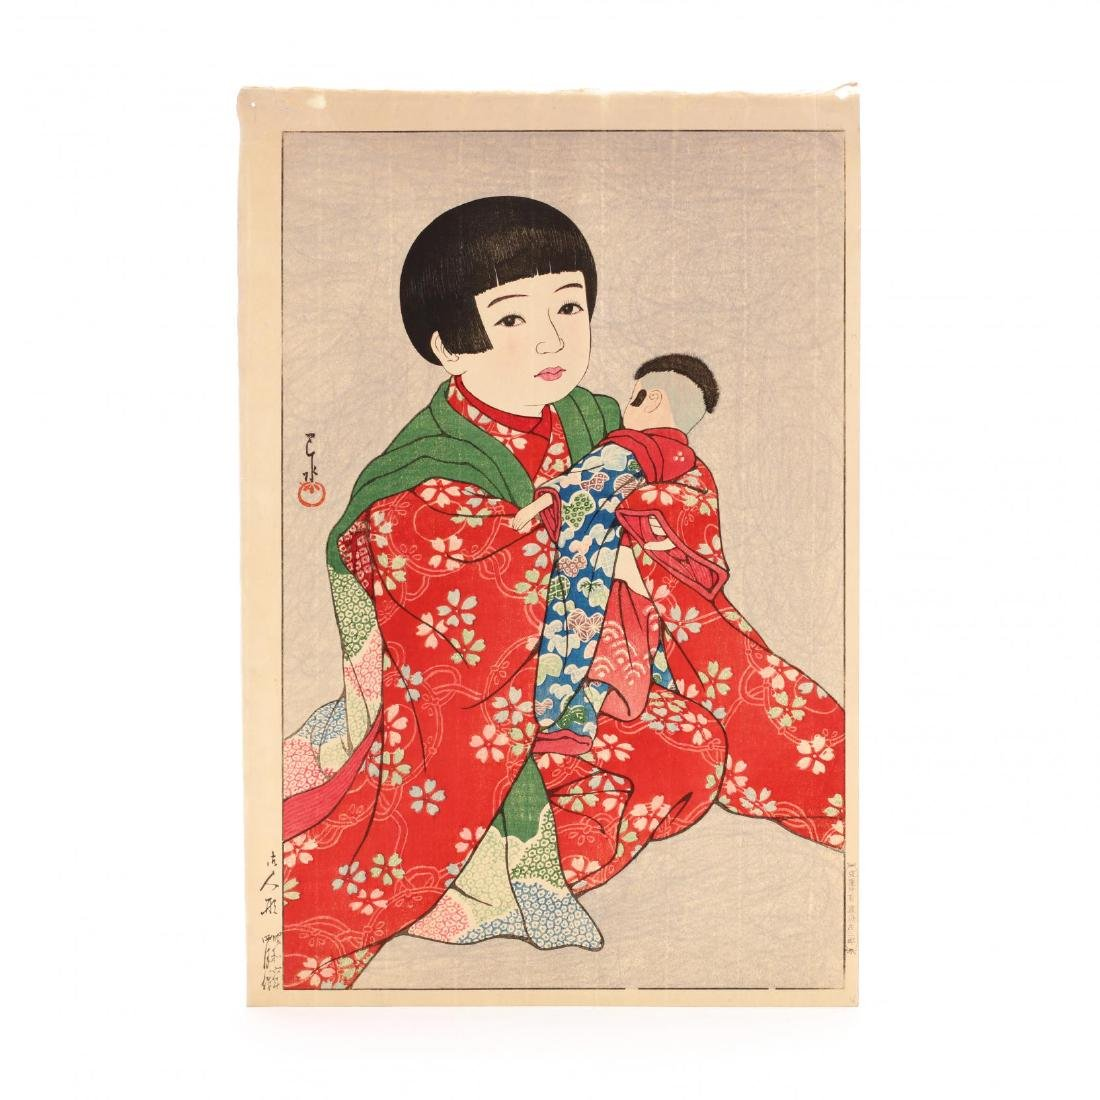 A Doll  by Hasui Kawase (Japanese, 1883-1957)